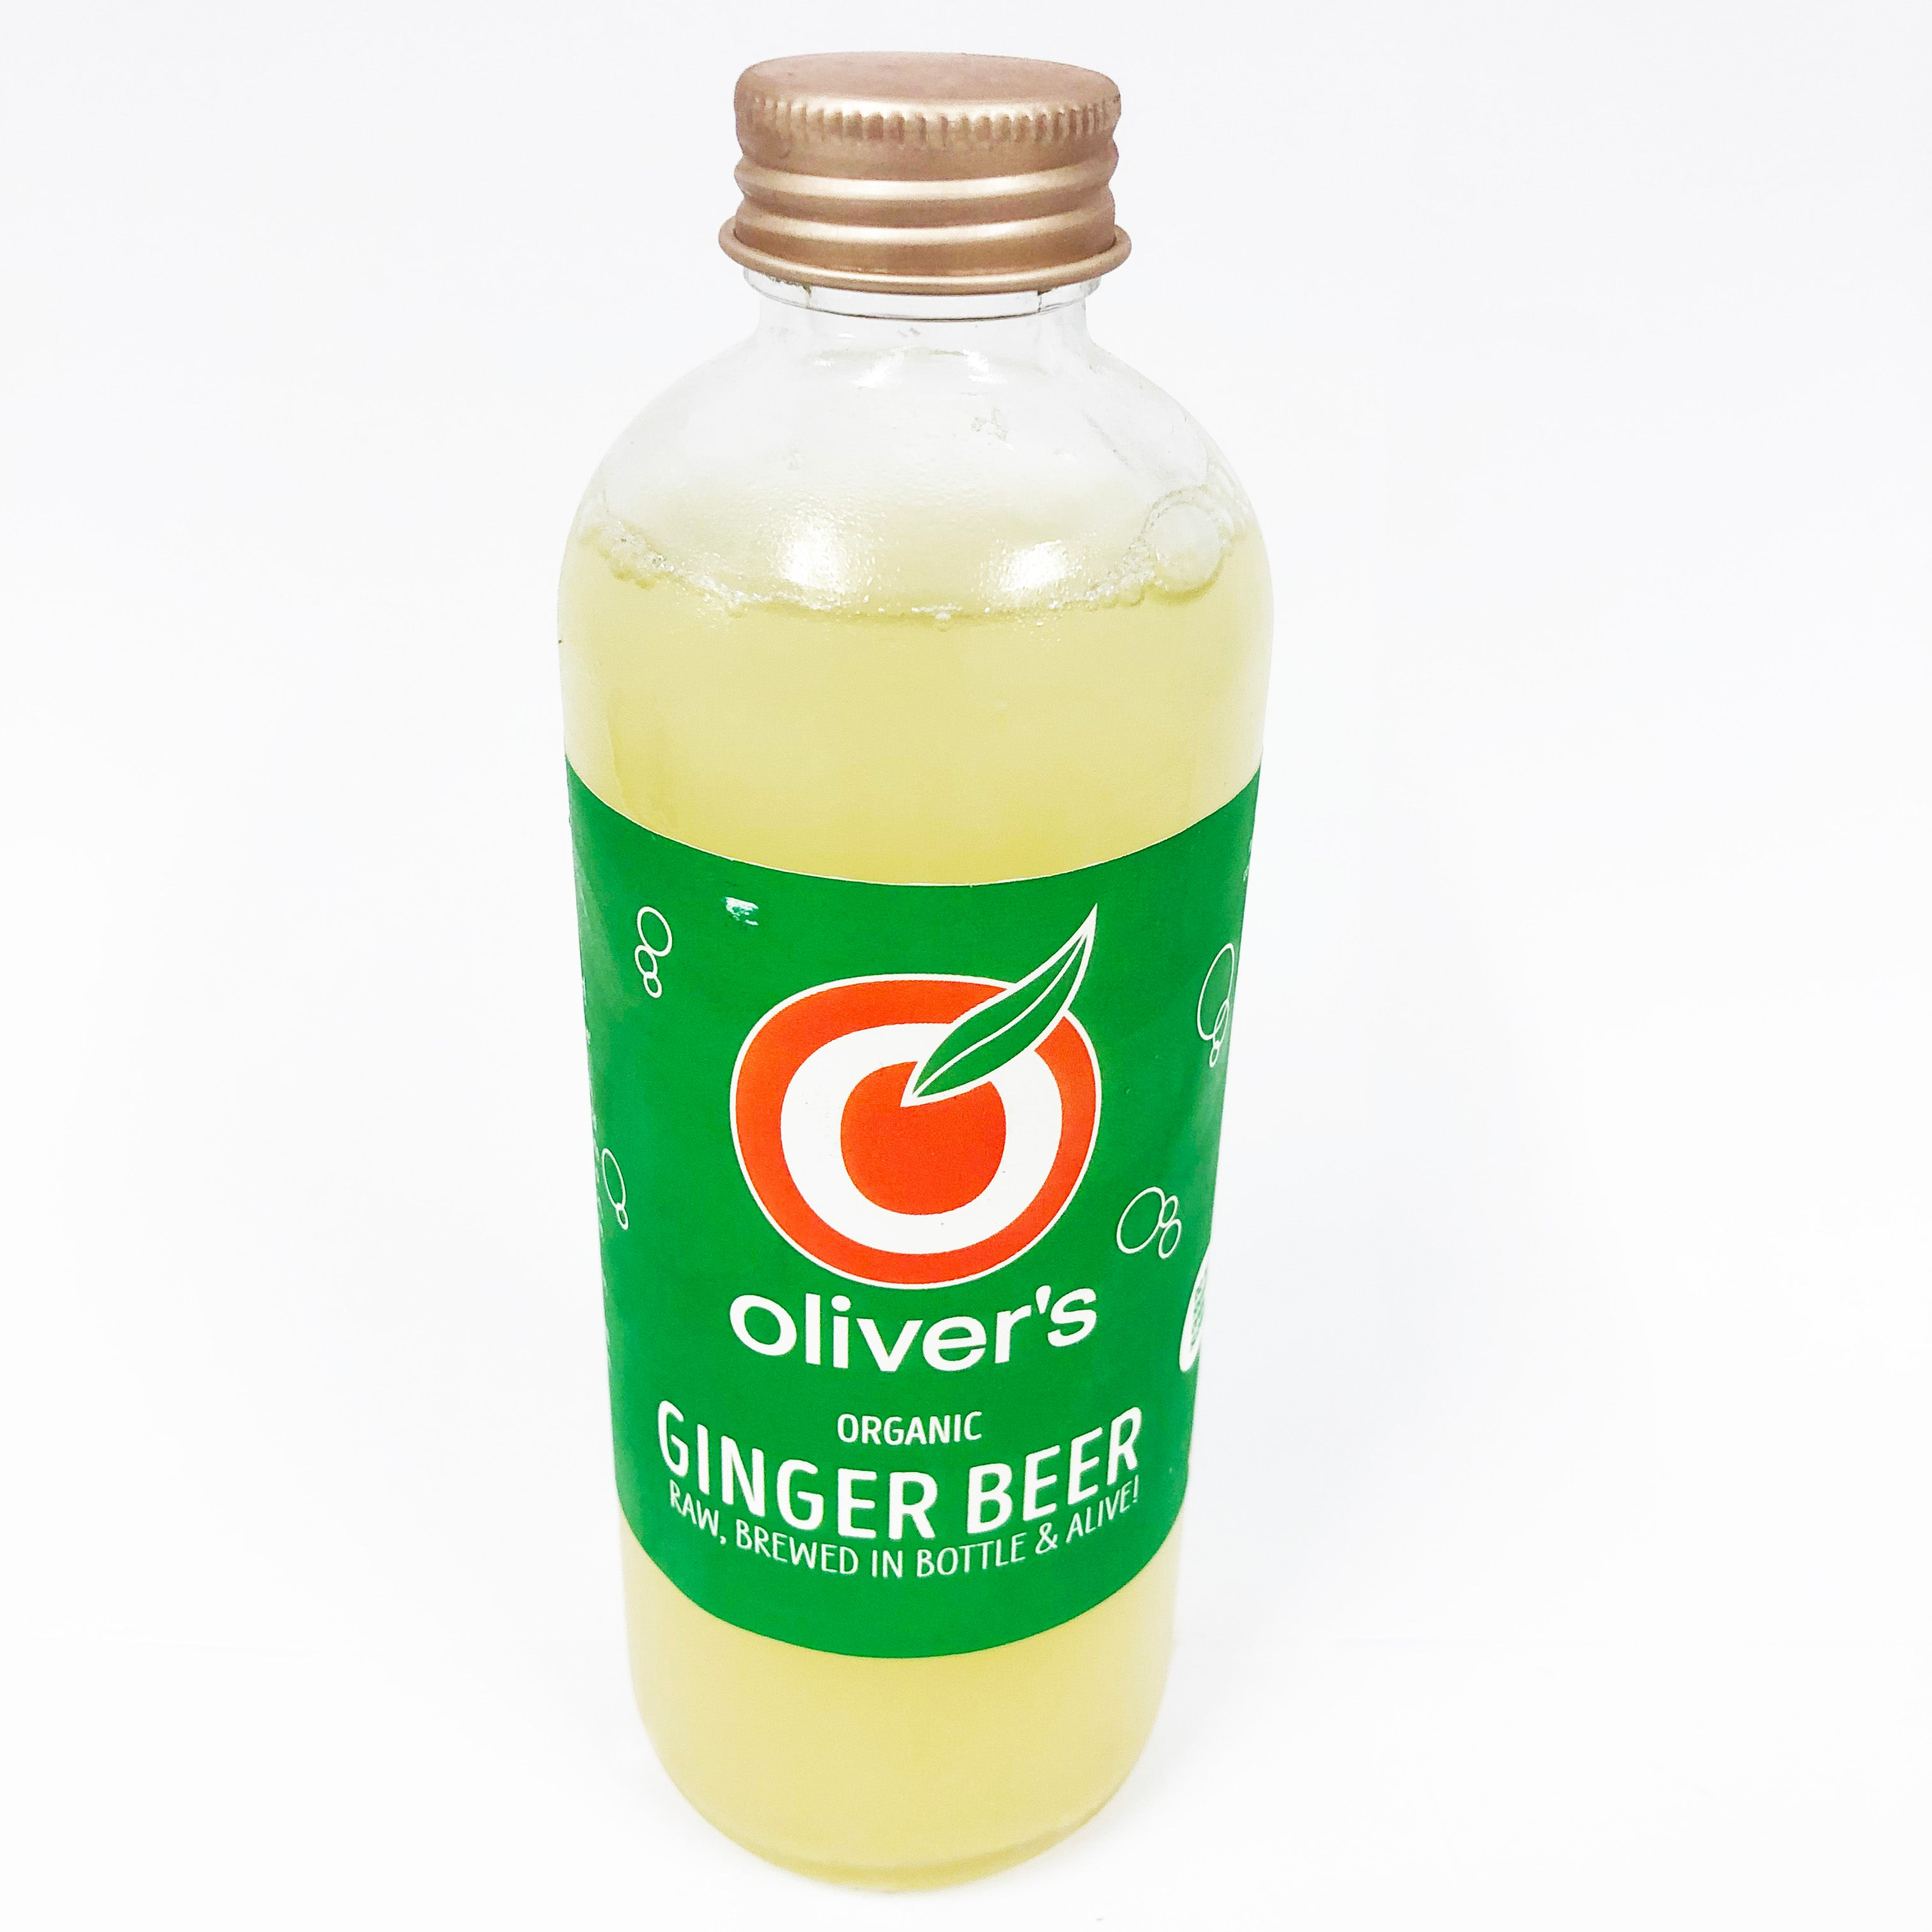 Oliver's Organic Ginger Beer - 300ml (Box of 12)